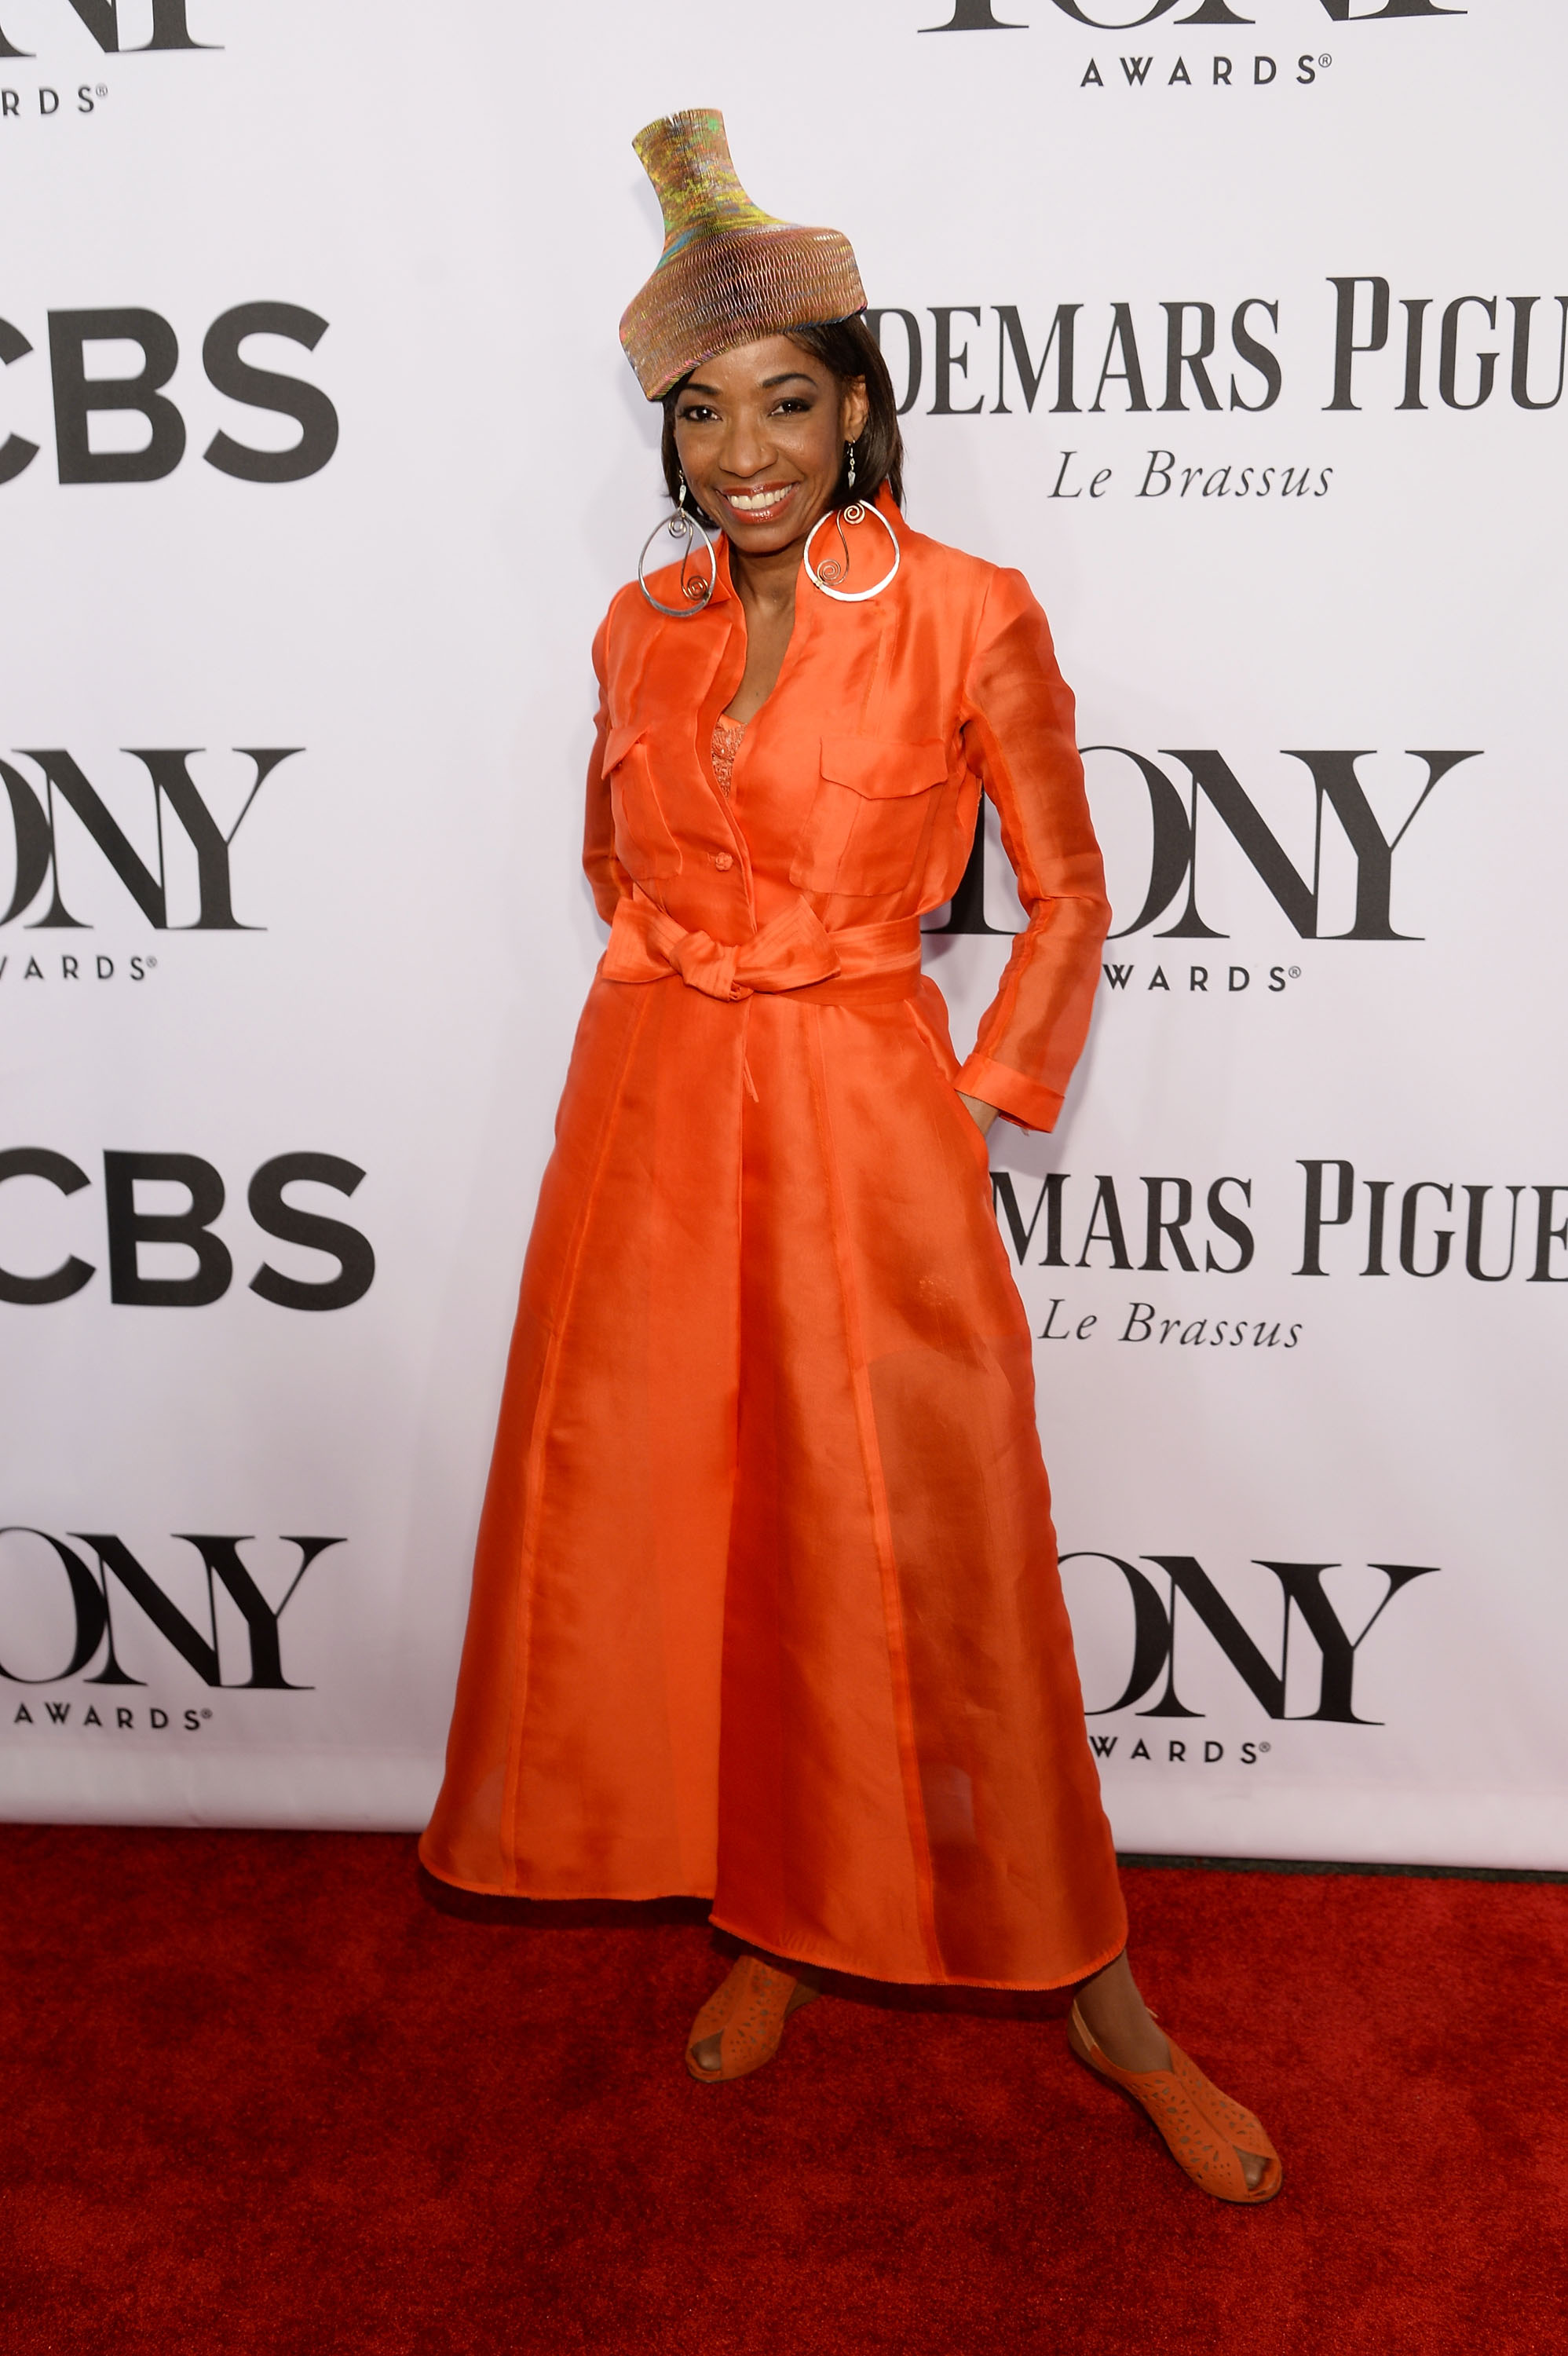 Actress Adriane Lenox attends the 68th Annual Tony Awards at Radio City Music Hall on June 8, 2014 in New York City.